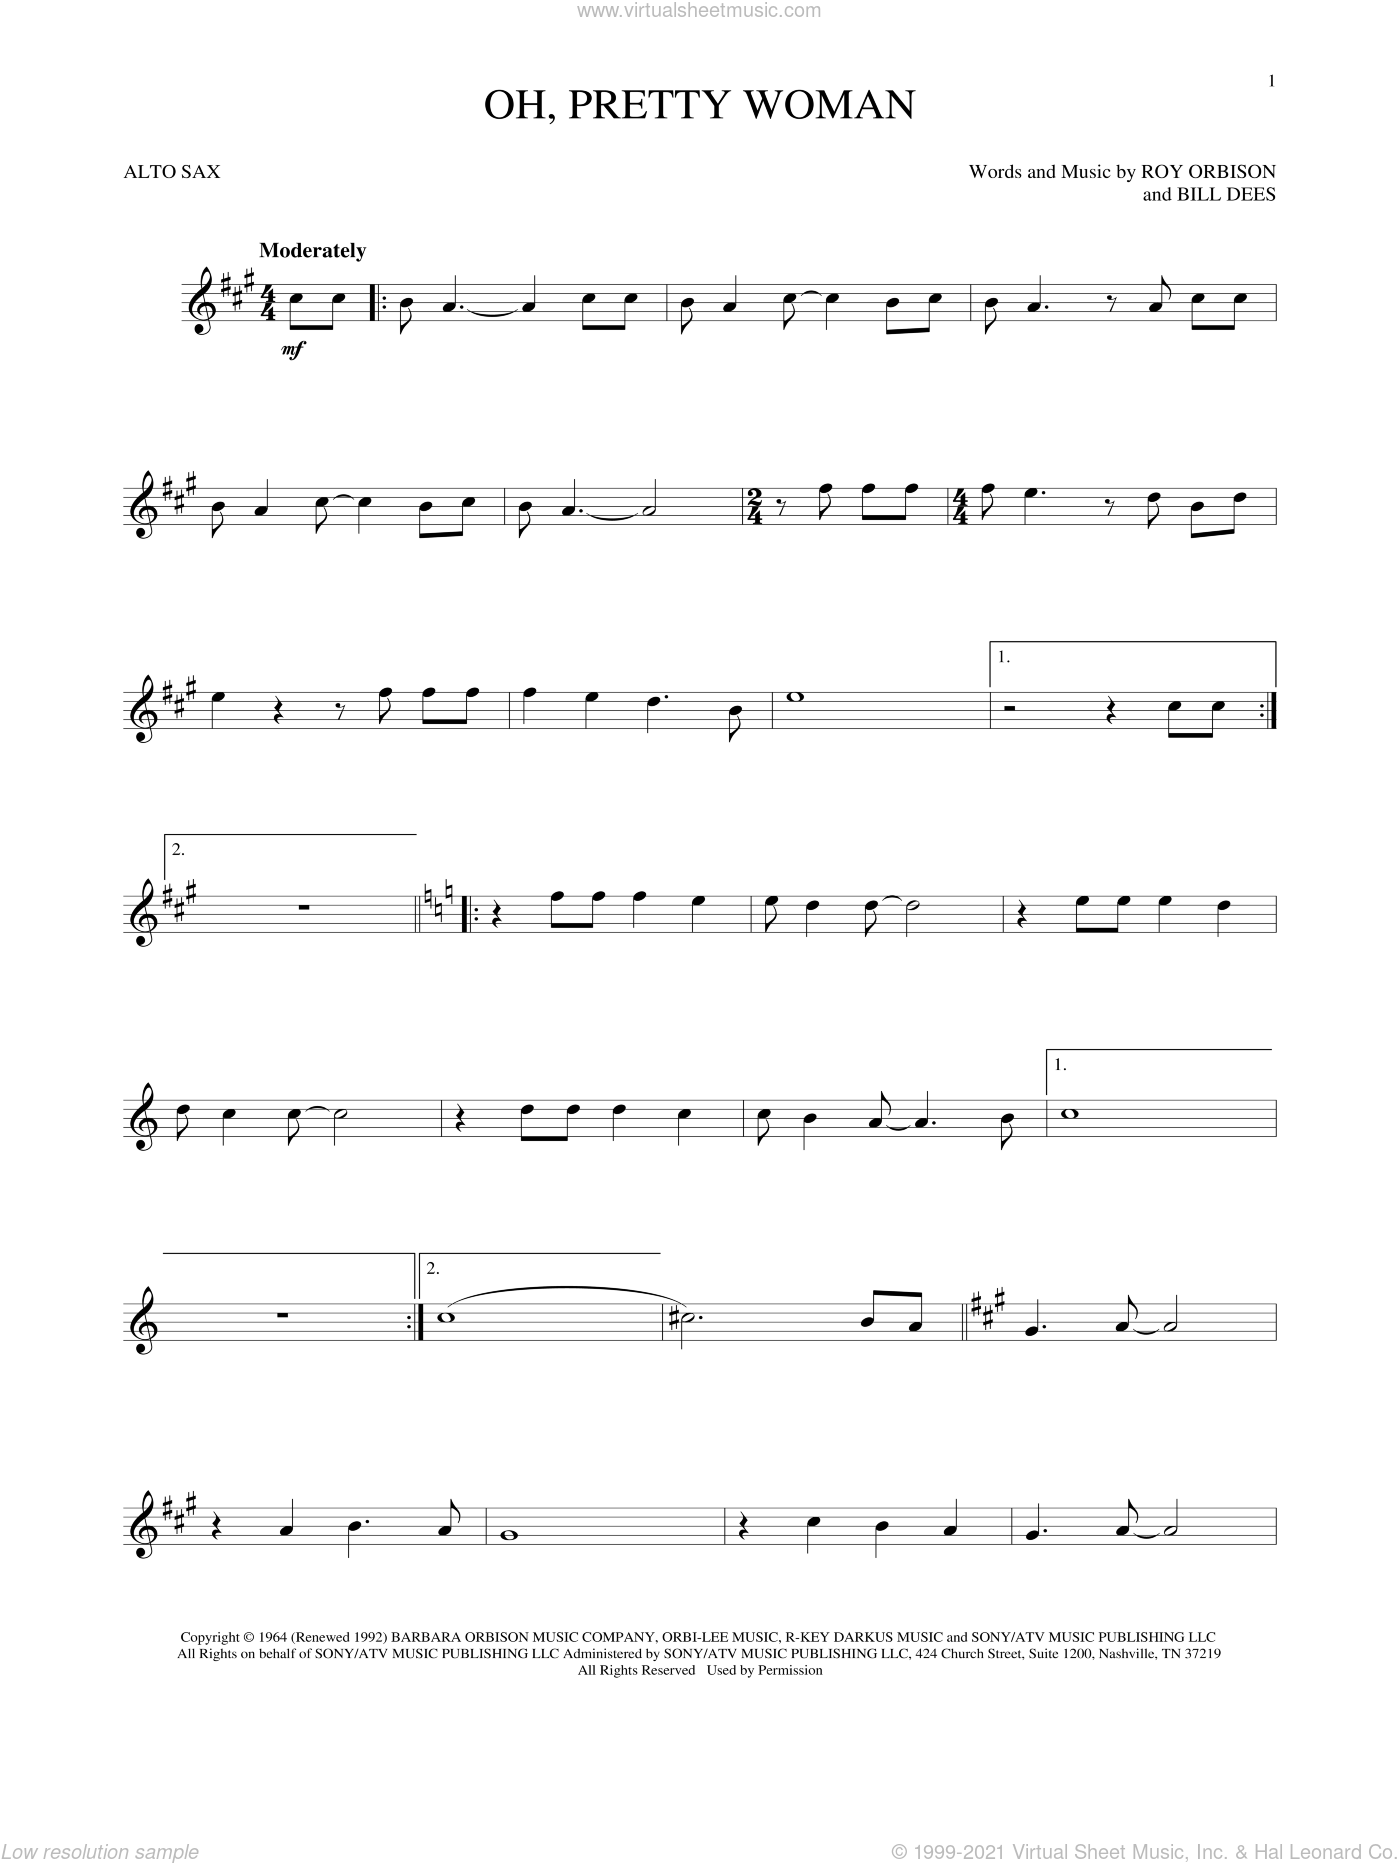 Oh, Pretty Woman sheet music for alto saxophone solo by Roy Orbison and Bill Dees, intermediate skill level